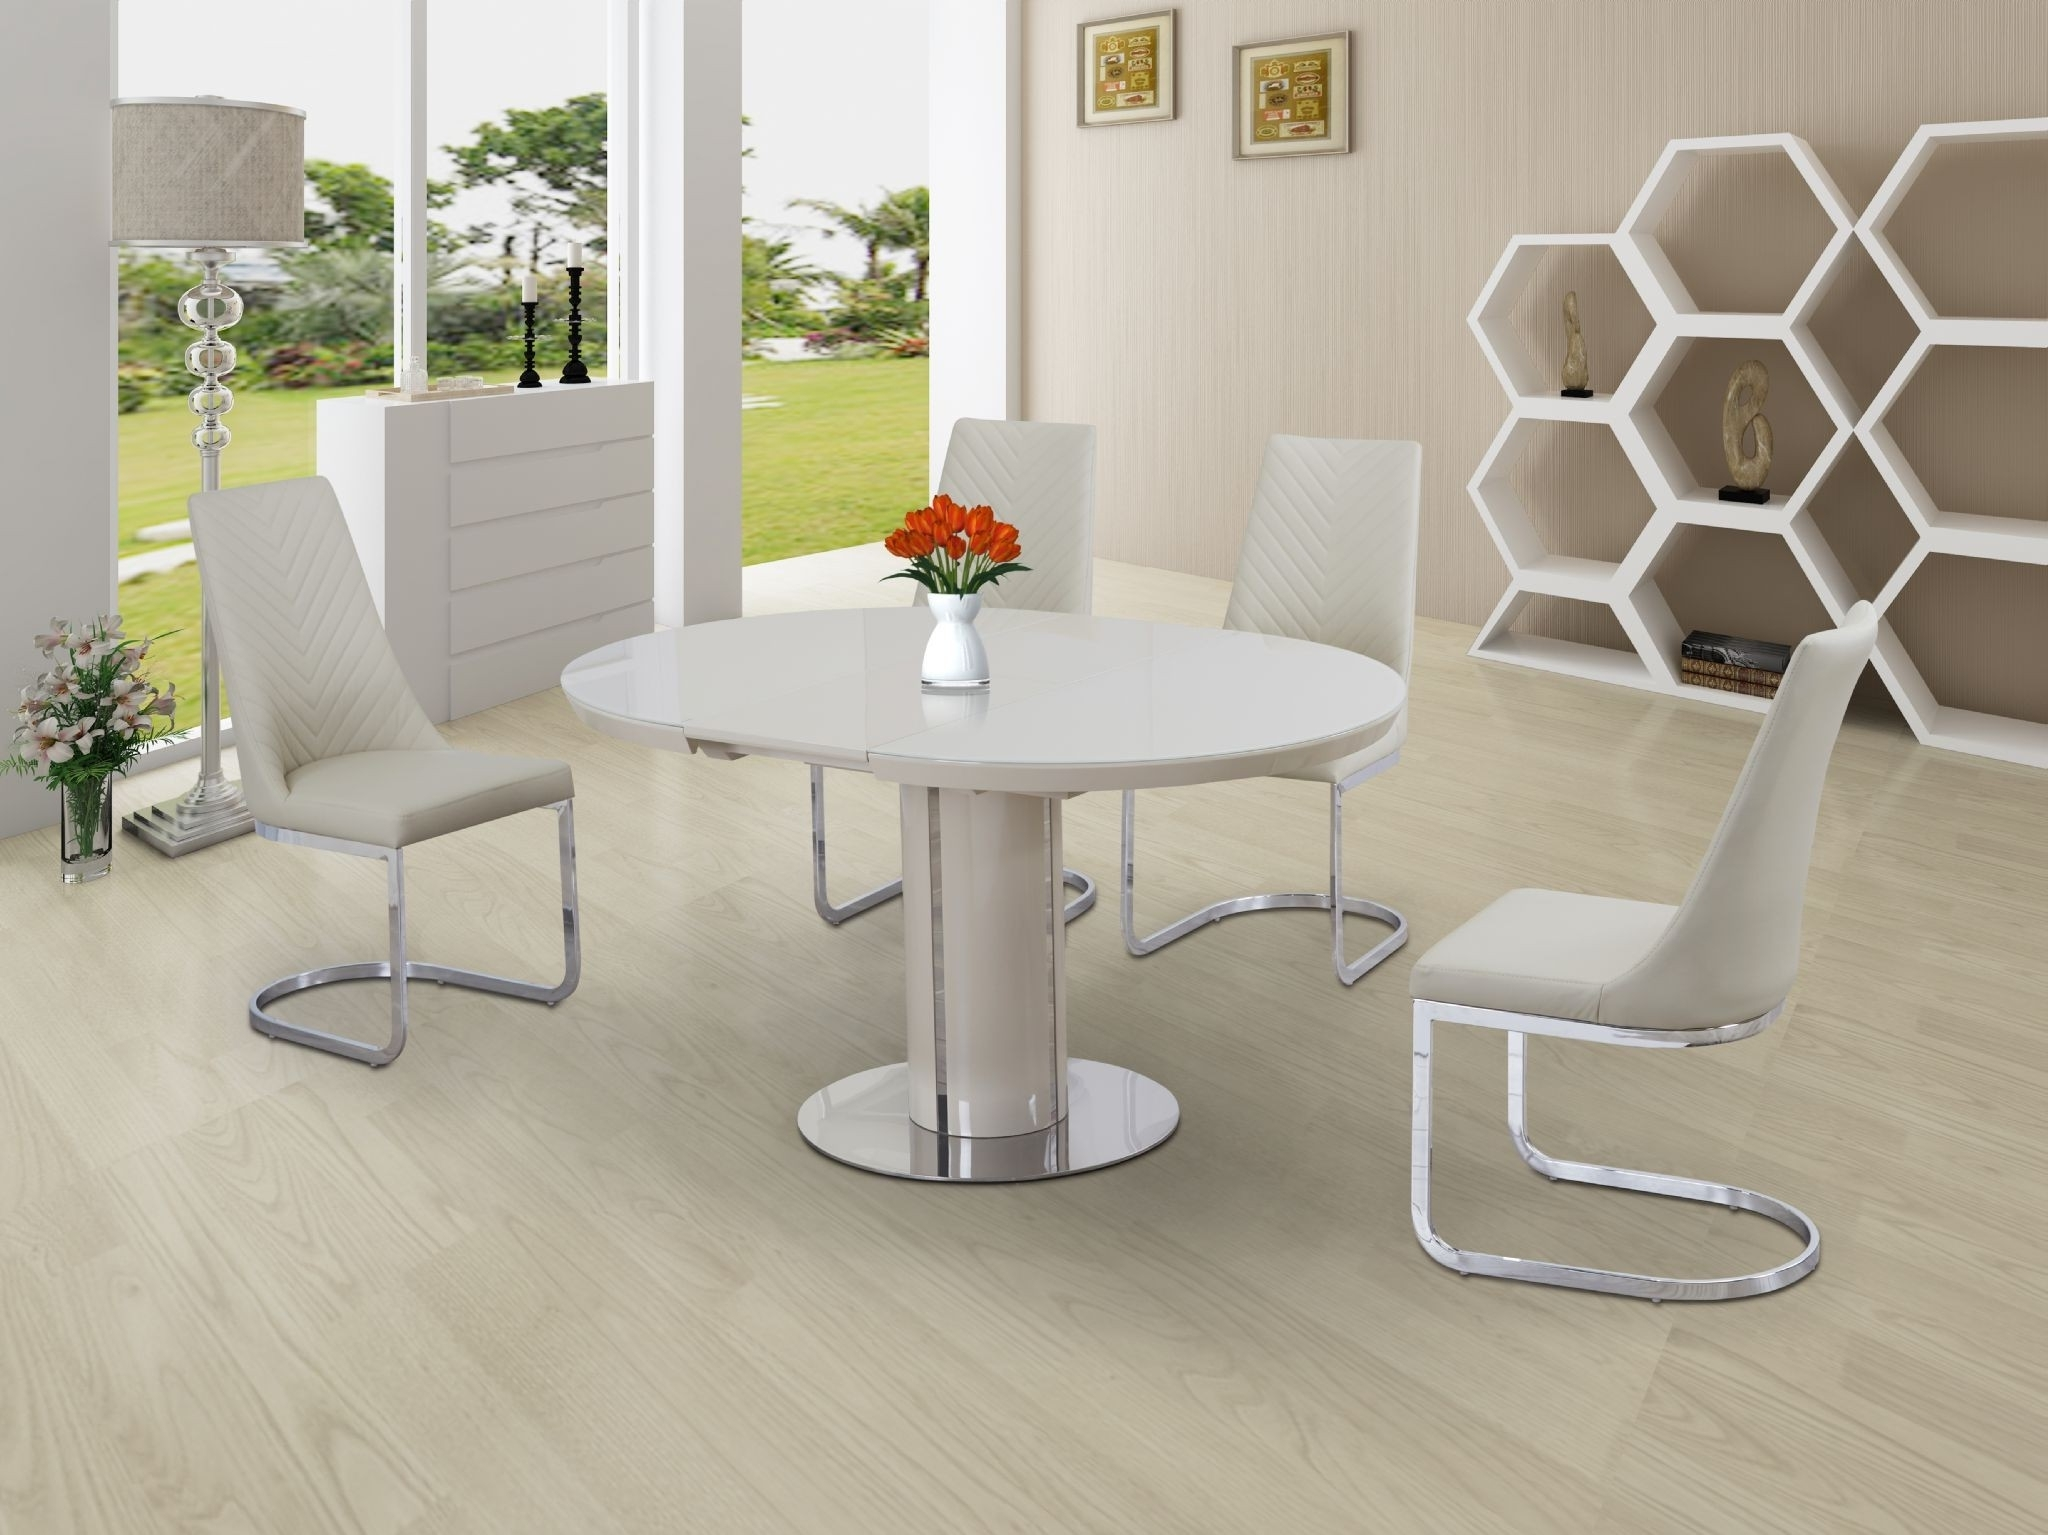 High Gloss Extending Dining Tables Regarding Recent Buy Annular Cream High Gloss Extending Dining Table (View 13 of 25)